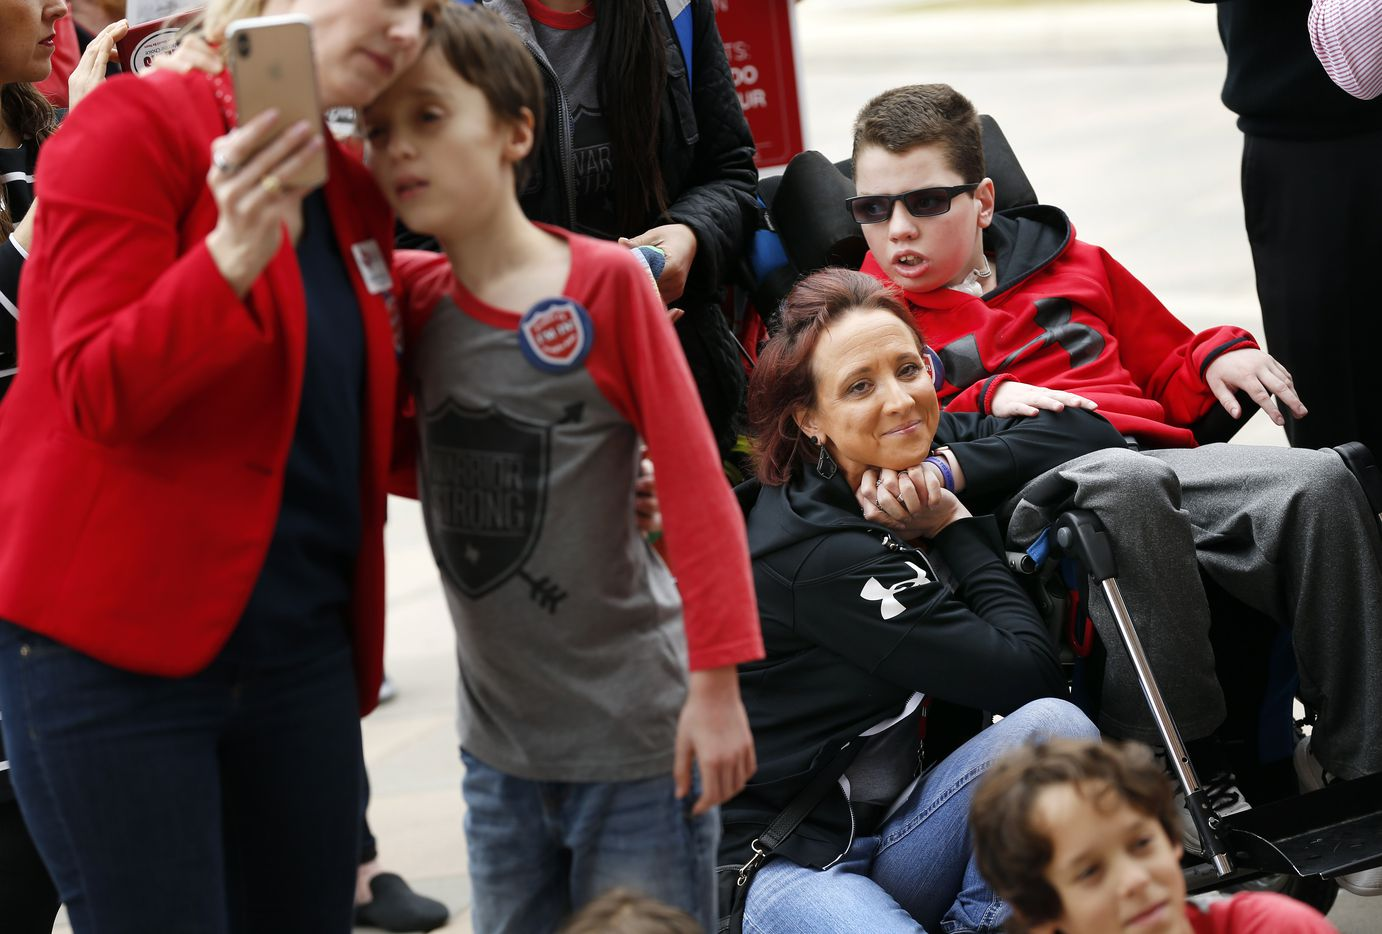 Crystal Brown (right) of Buda, Texas and her 12 yr-old medically fragile son Braden Brown listen to legislators speak at a Protect Fragile TX Children rally outside the Texas State Capitol, Tuesday, February 26, 2019.